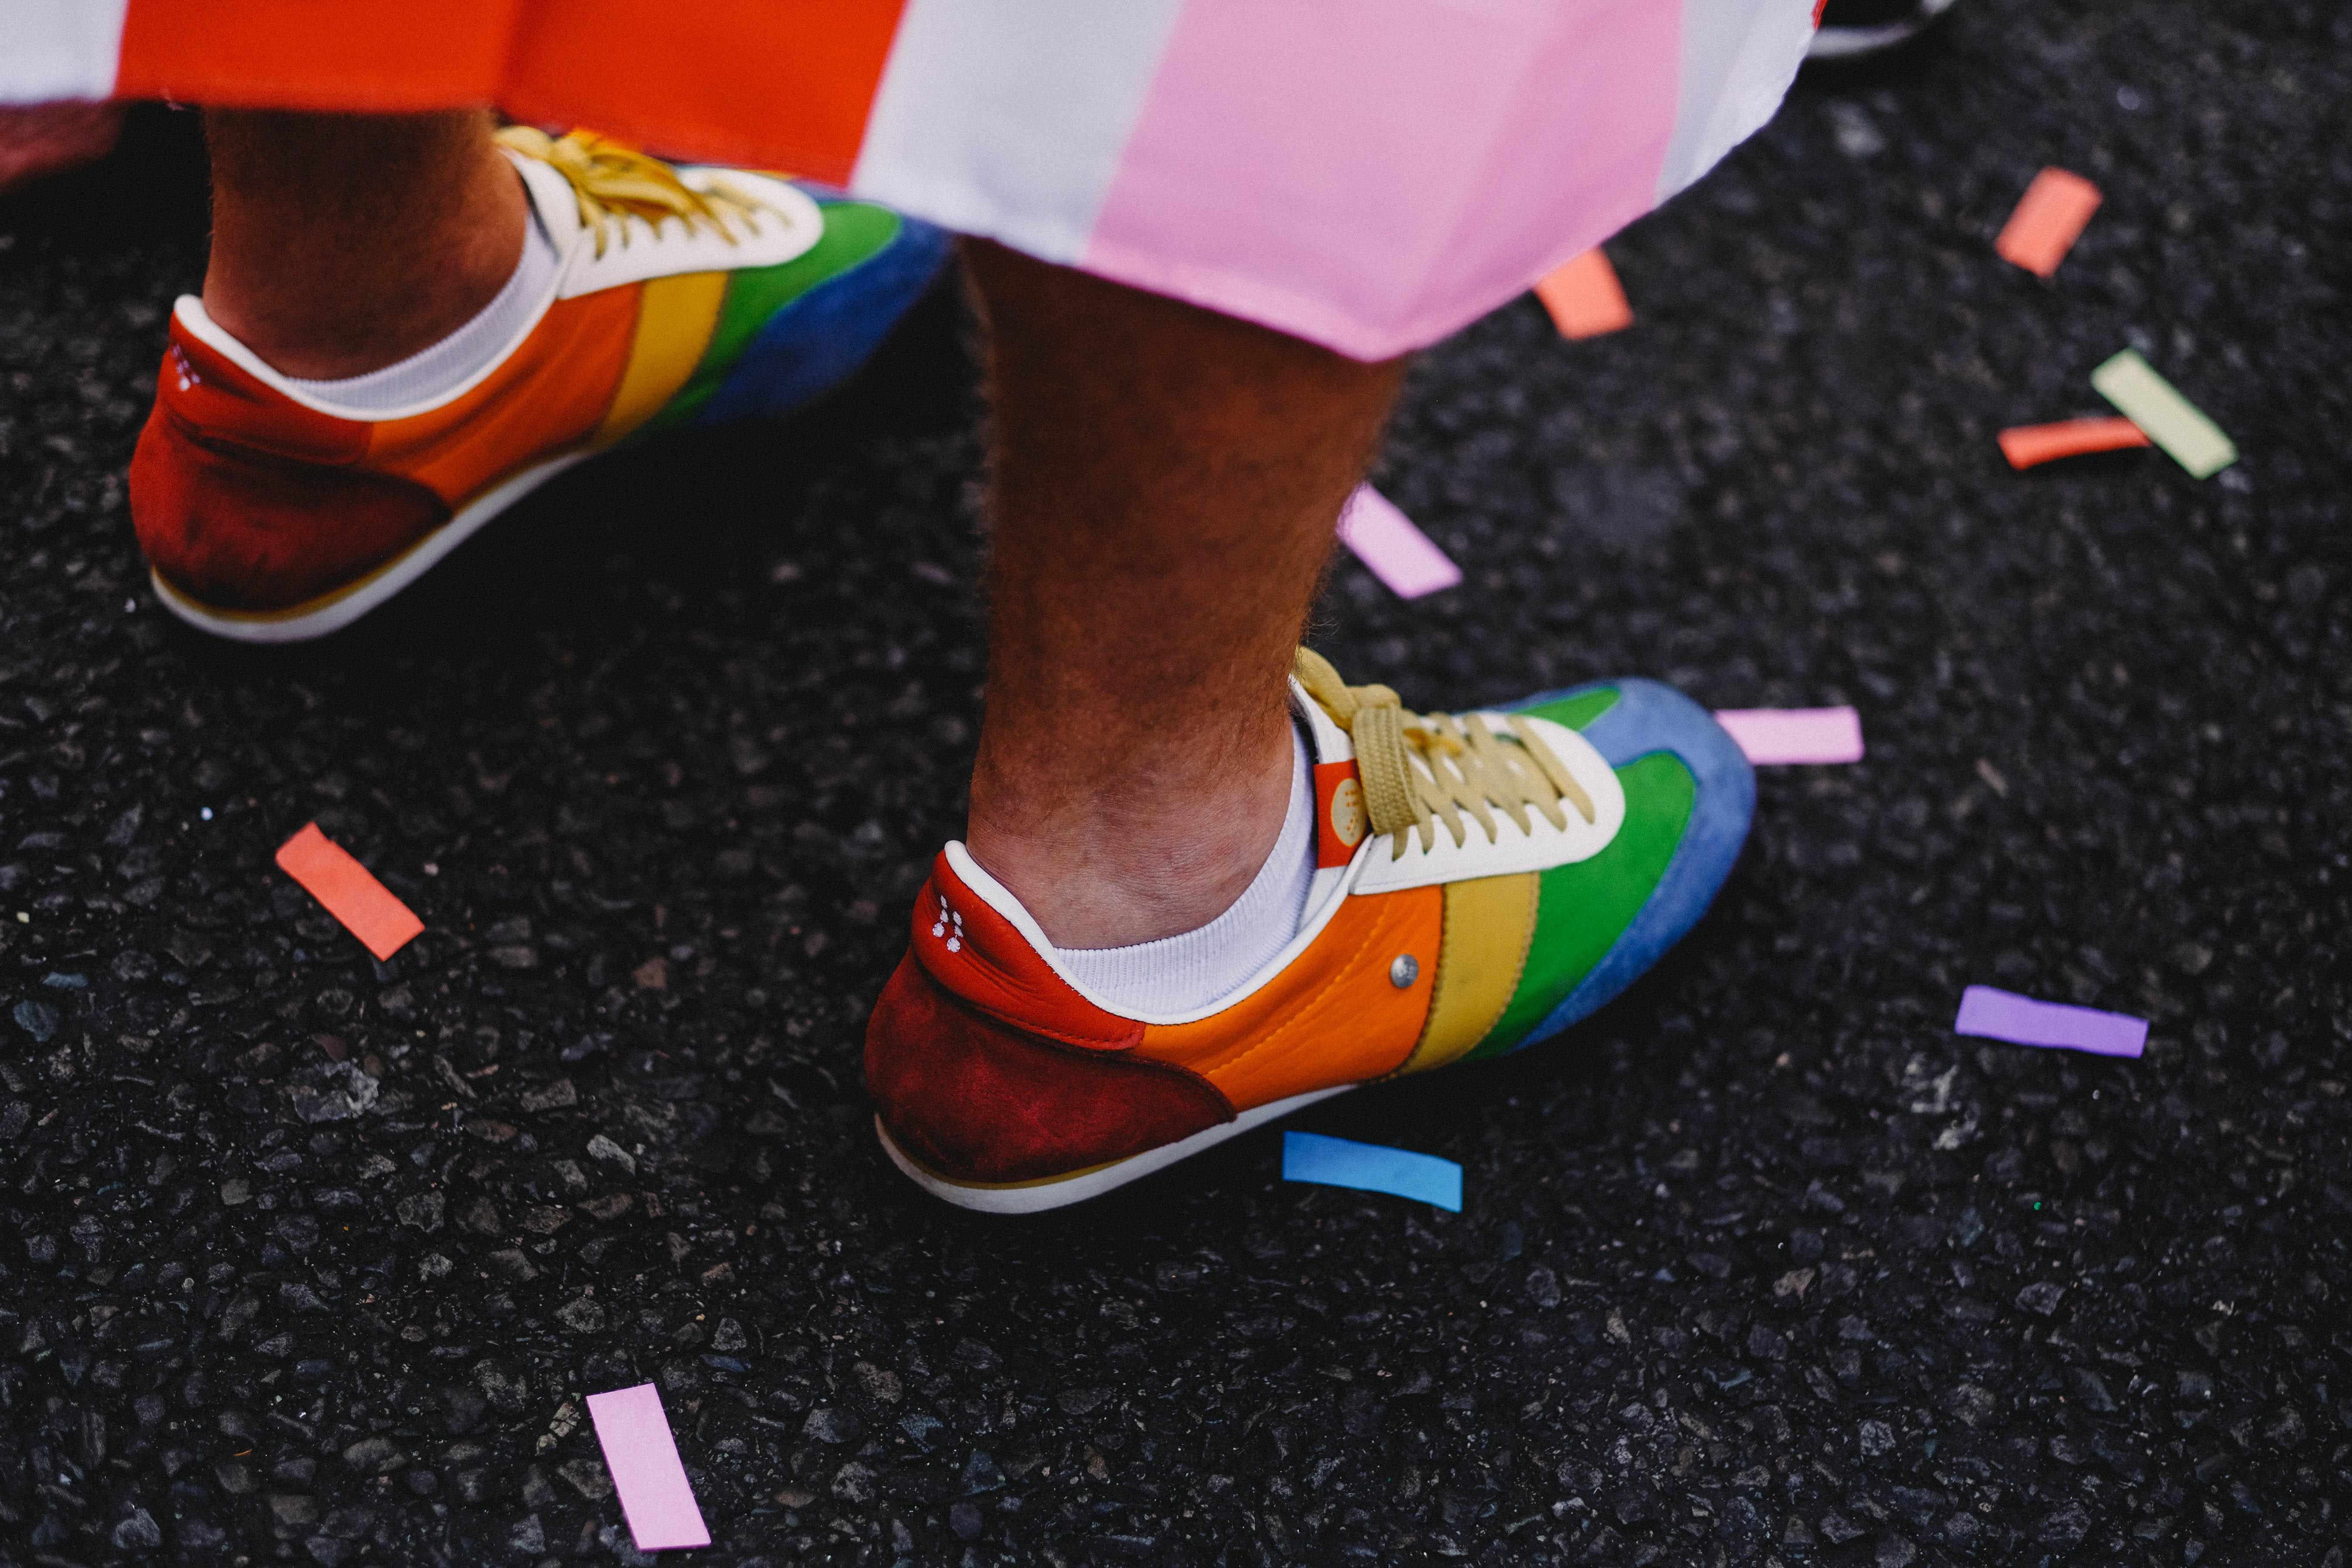 person wearing multicolored low-top shoes standing on ground